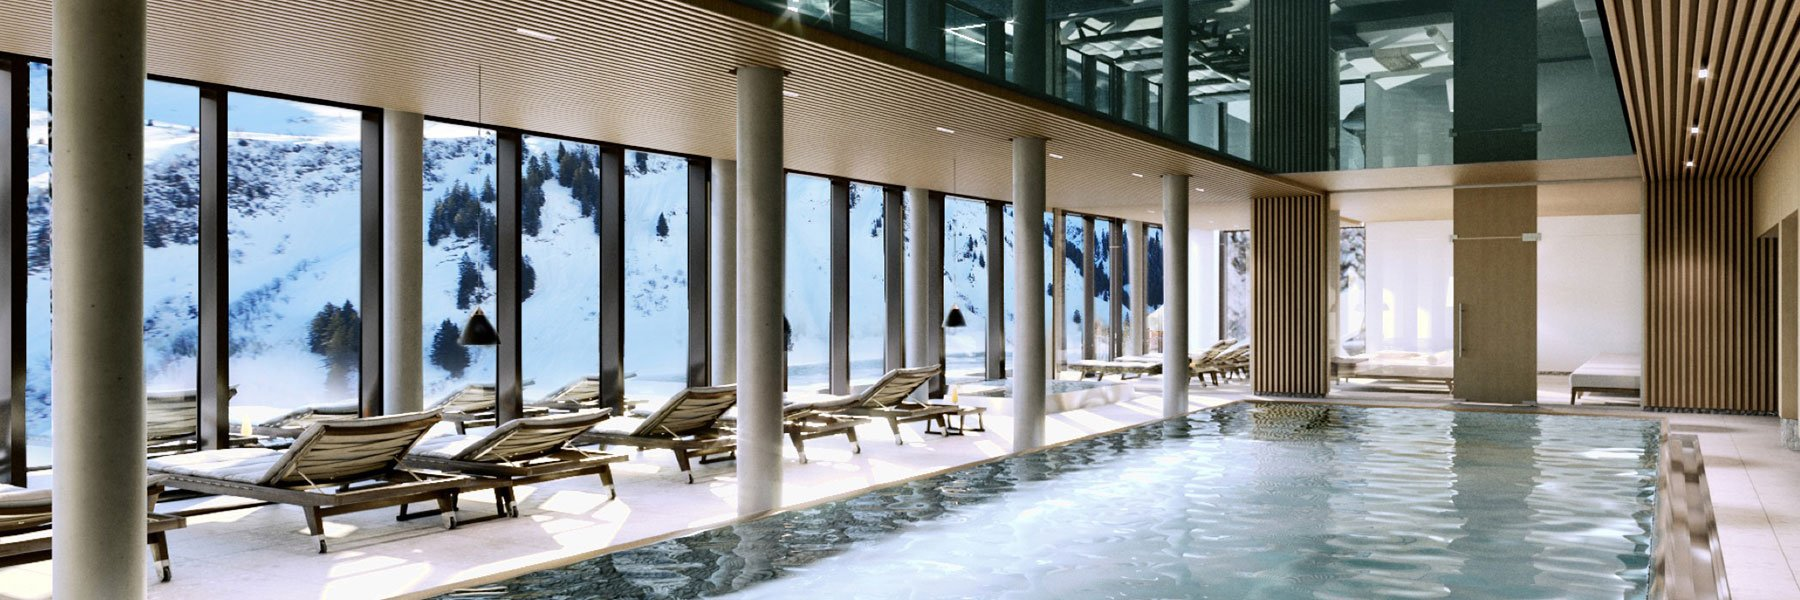 Indoorpool im Panoramahotel Alpenstern